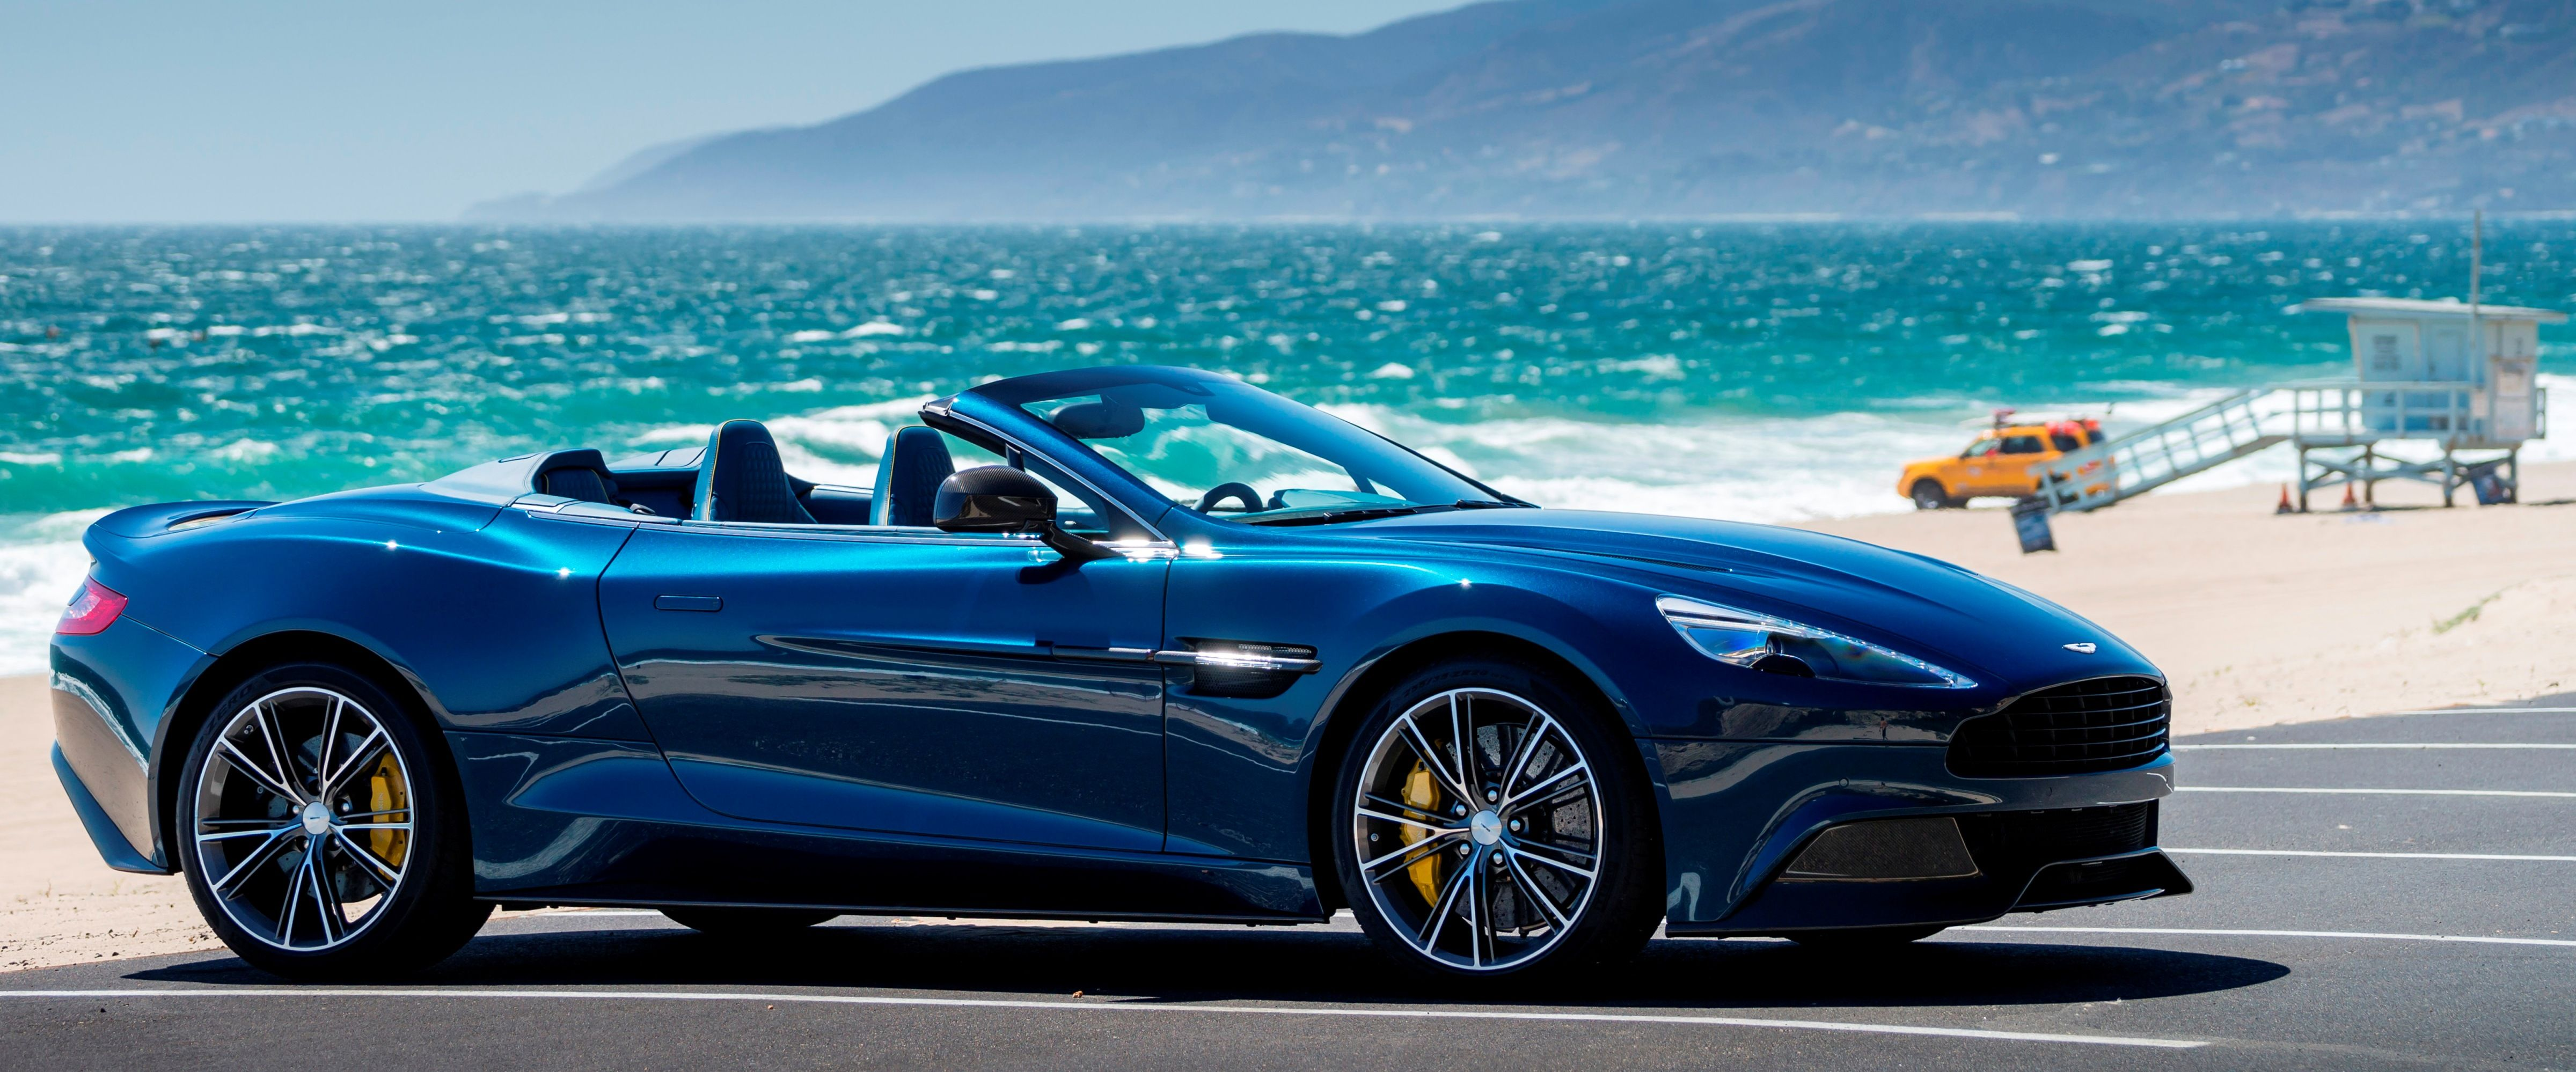 aston martin vanquish wallpapers pictures